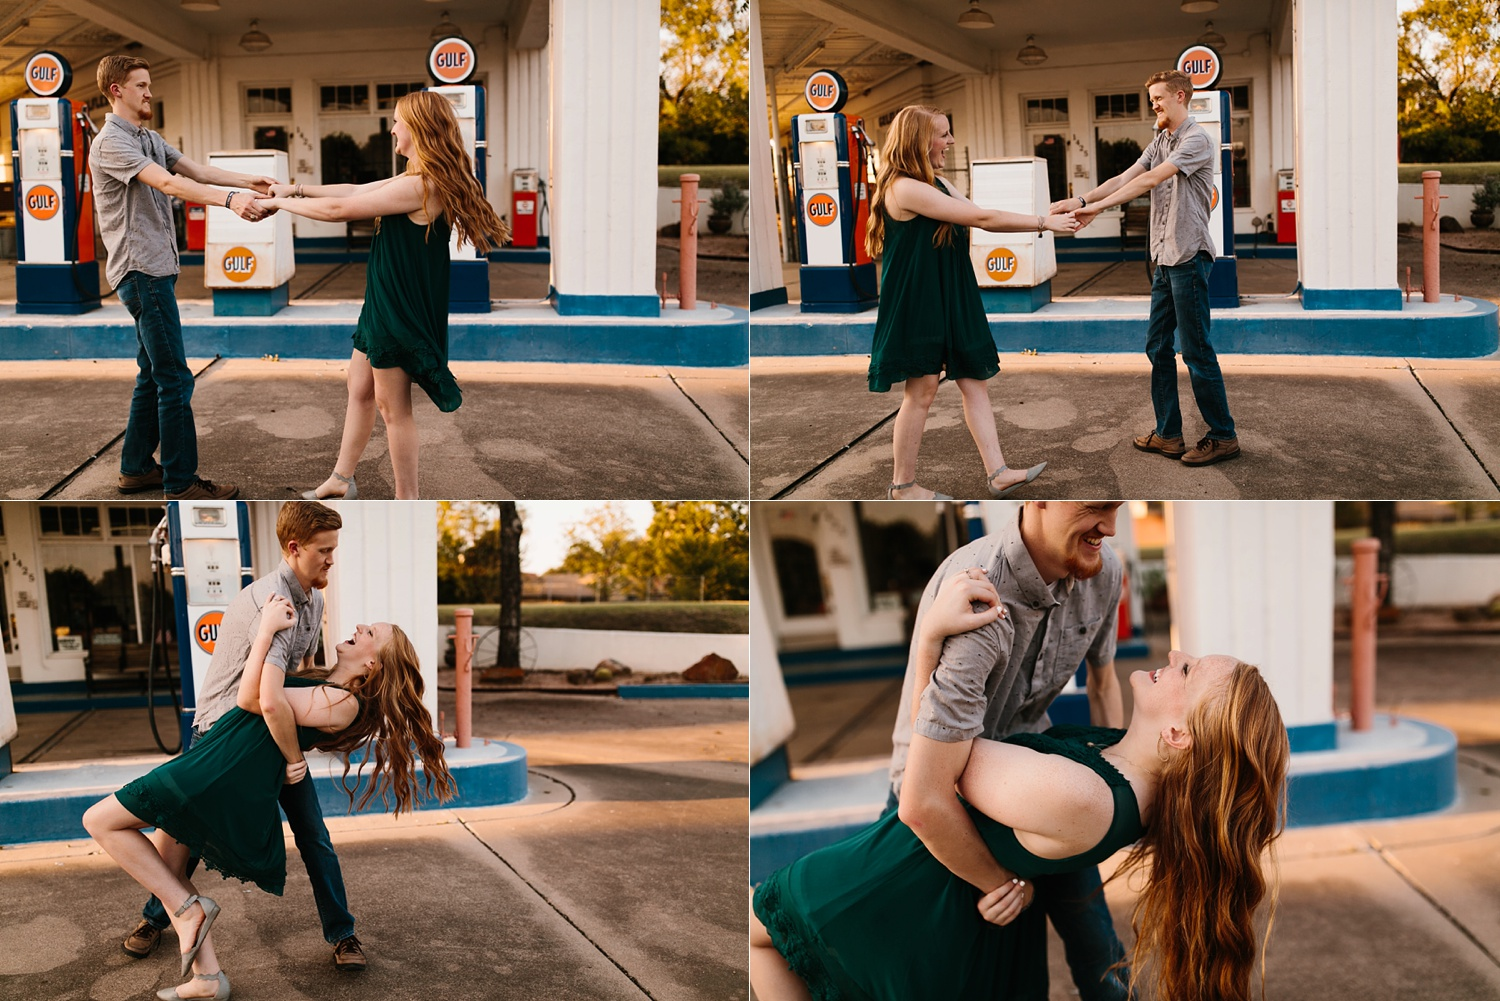 Kayla + Alex _ a joyful and loving engagement shoot in Waco, Texas by North Texas Wedding Photographer Rachel Meagan Photography _42